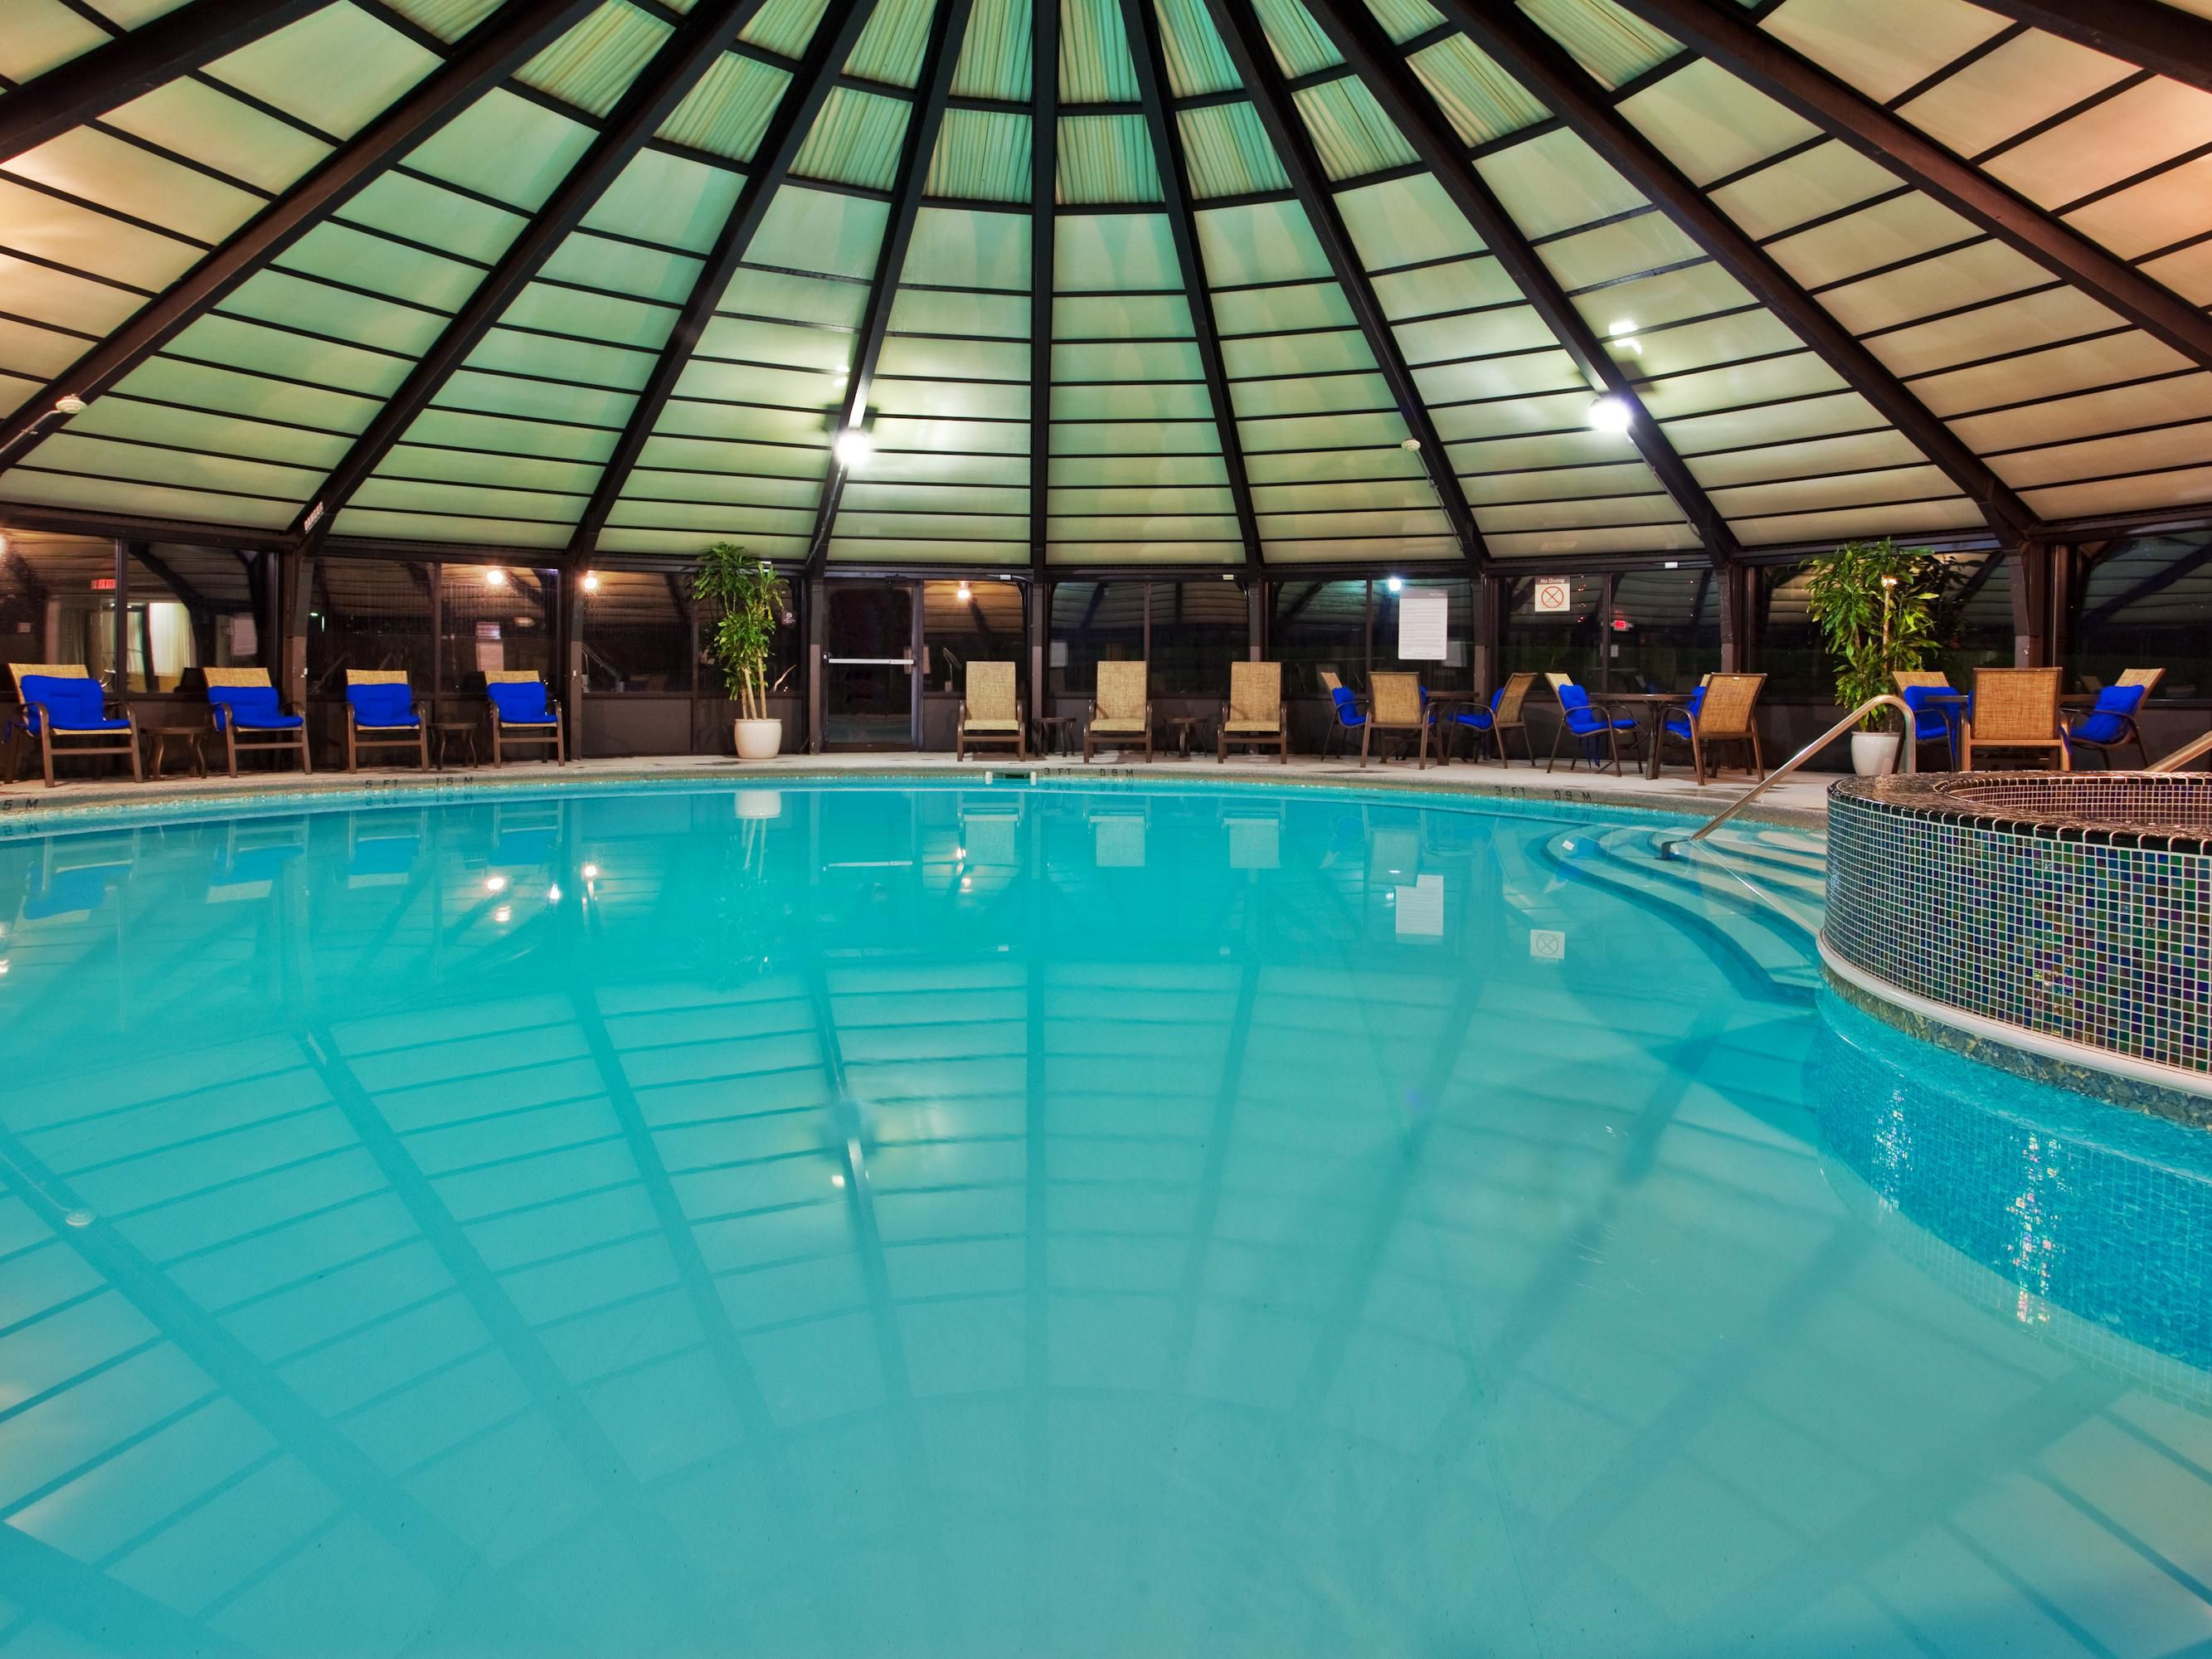 Swimming Pool At Crowne Plaza Cleveland South Groupsandmeetingsphotos